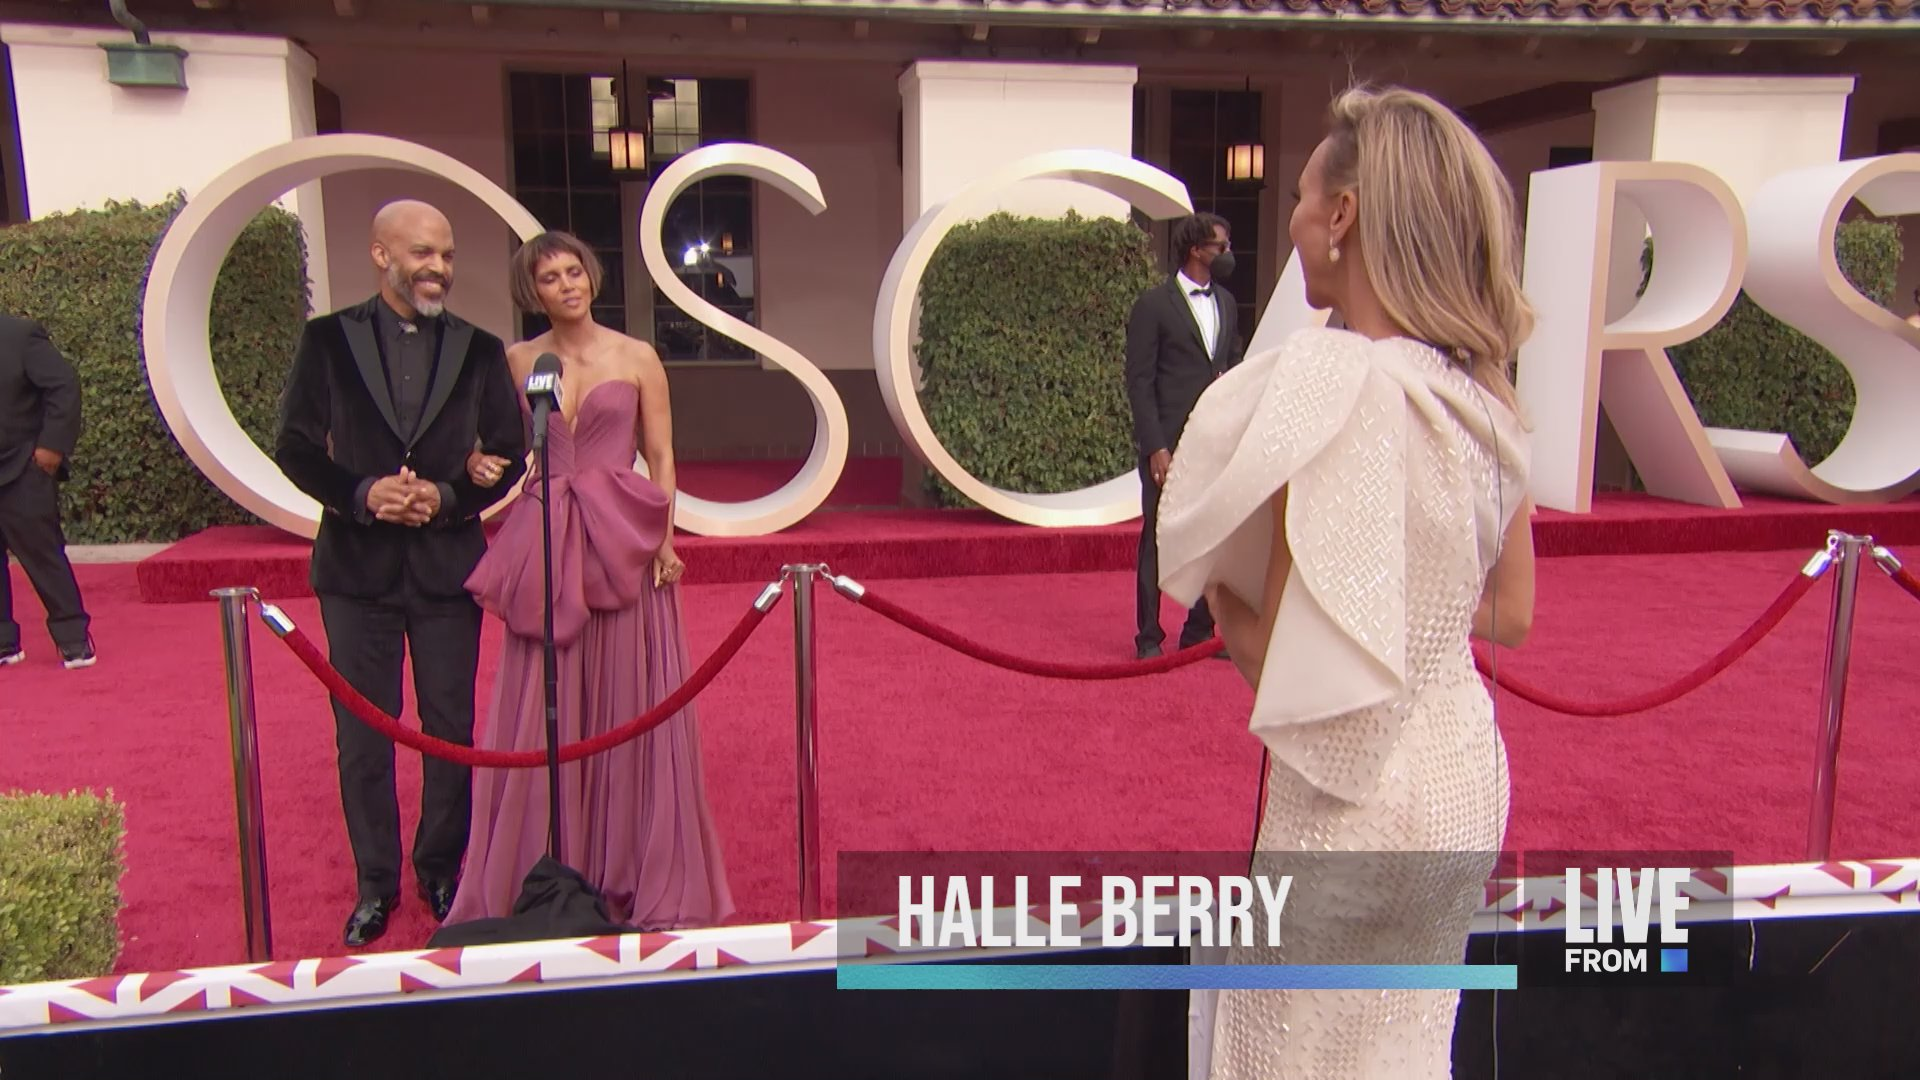 Halle Berry Reacts After Fan Pokes Fun at Her 2021 Oscars Look